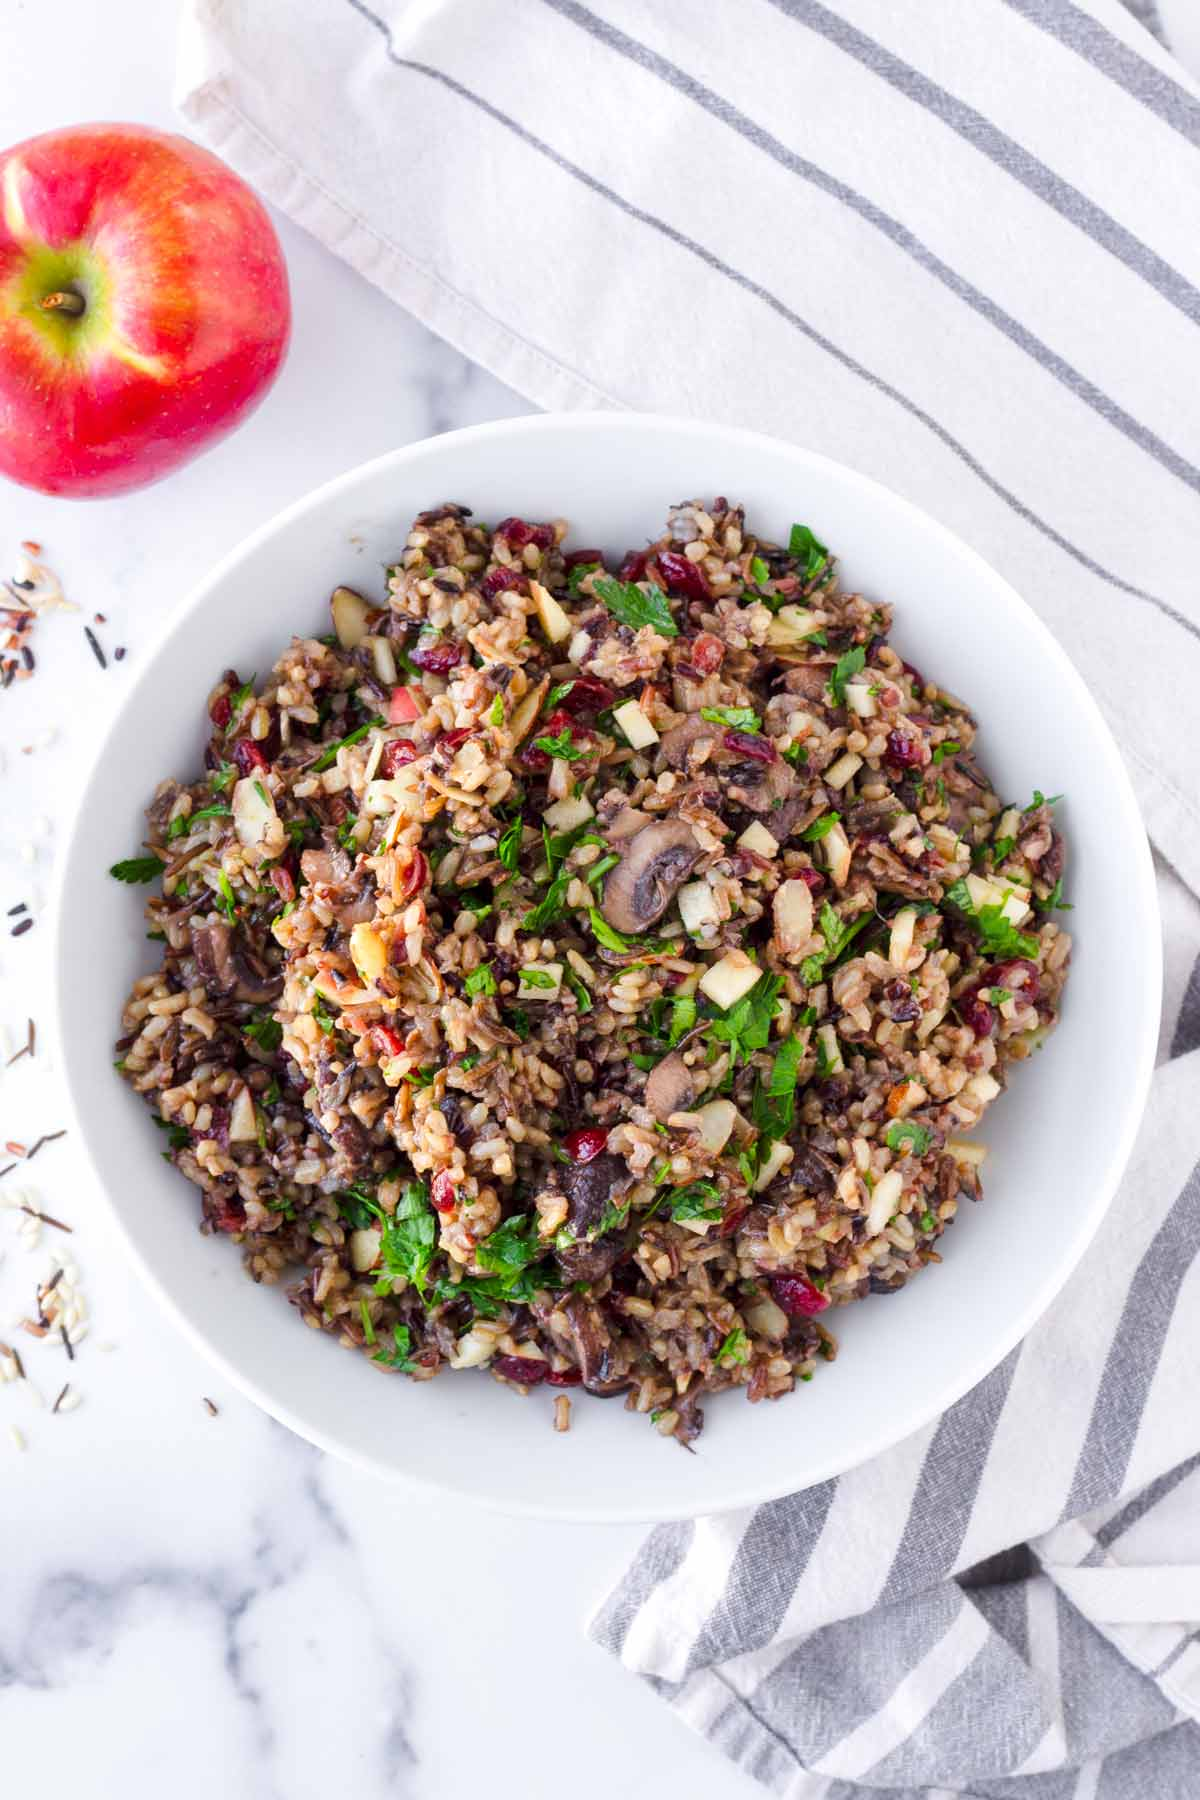 top view of wild mushroom pilaf in round bowl with apple